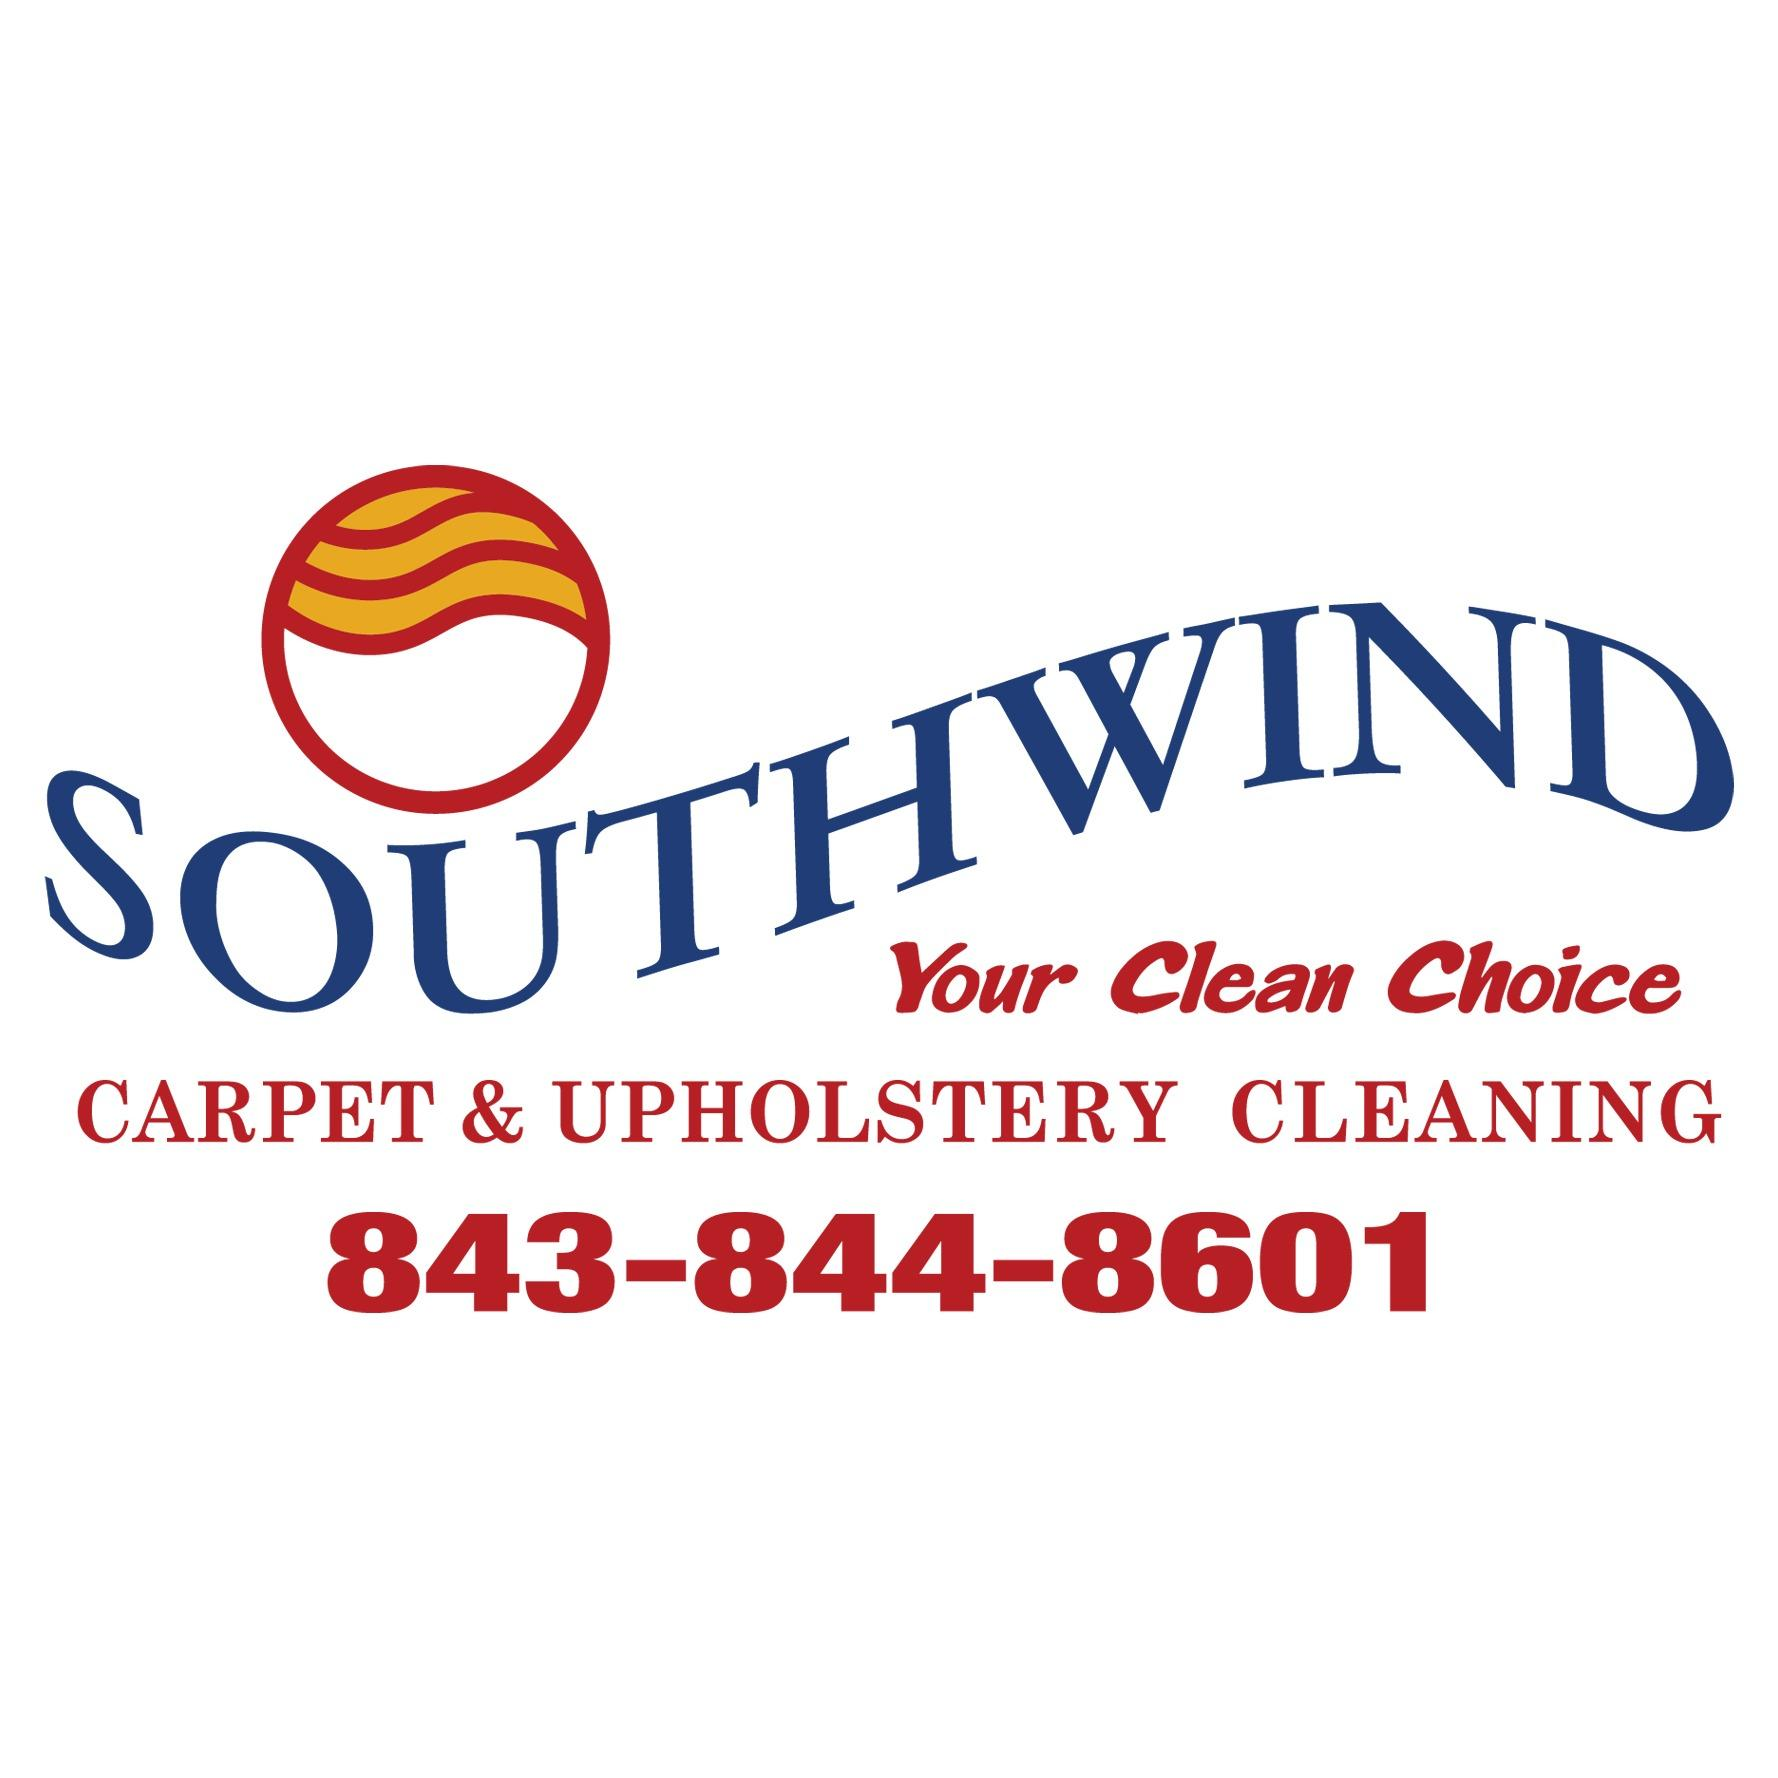 Southwind Carpet & Upholstery | Carpet & Upholstery Cleaning